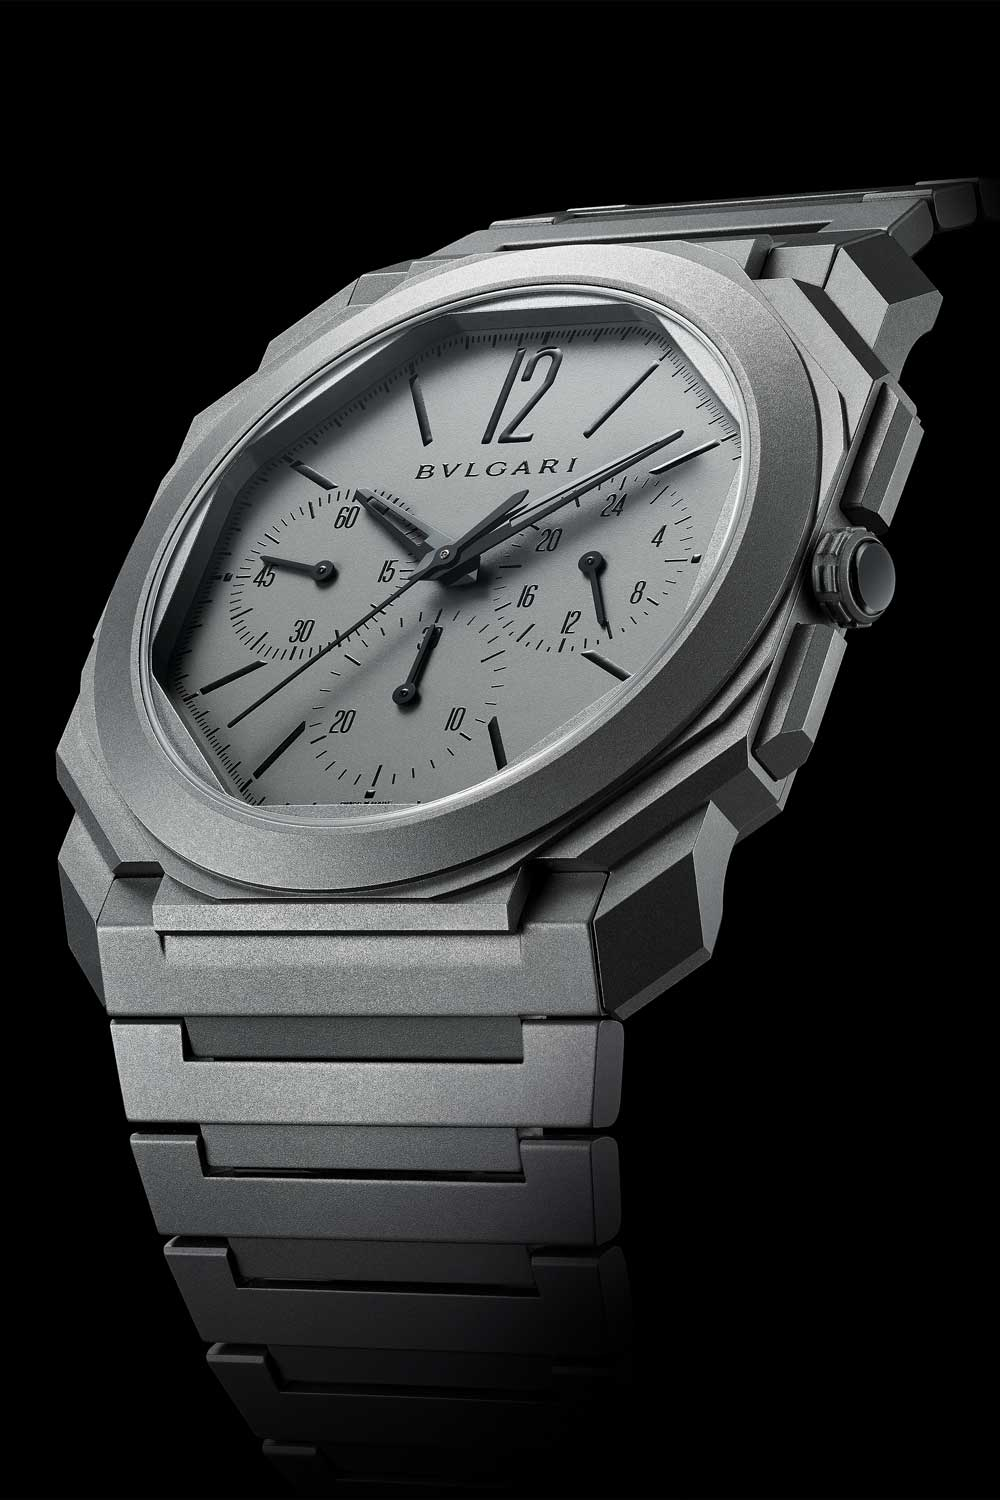 The Octo Finissimo Chronograph GMT Automatic